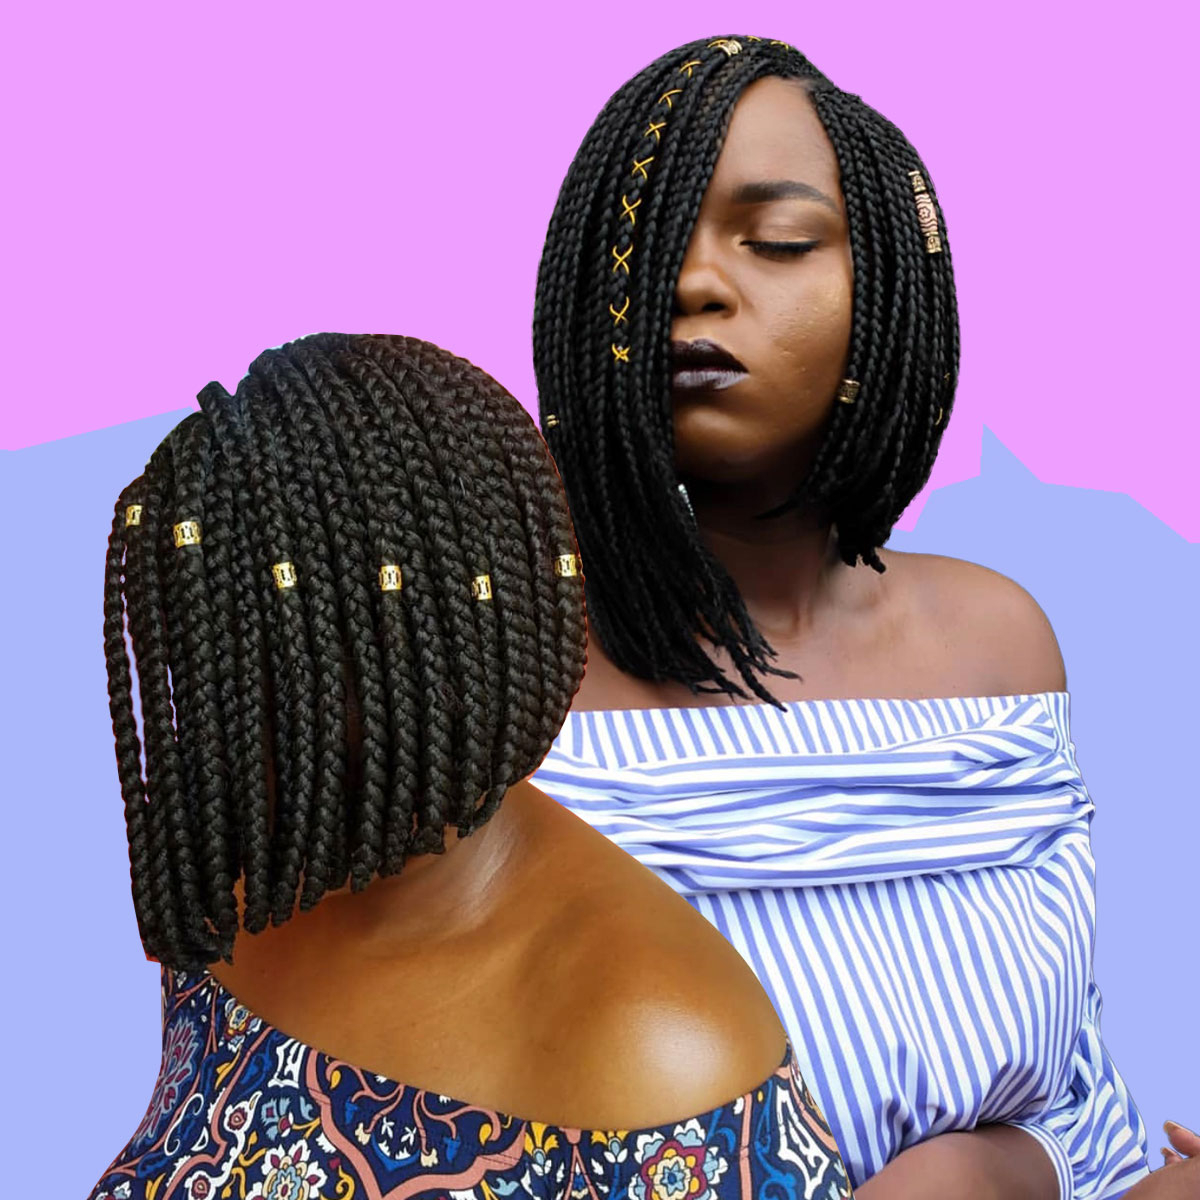 17 Beautiful Braided Bobs From Instagram You Need To Give A Try Throughout Pretty Short Bob Haircuts With Braid (View 7 of 20)